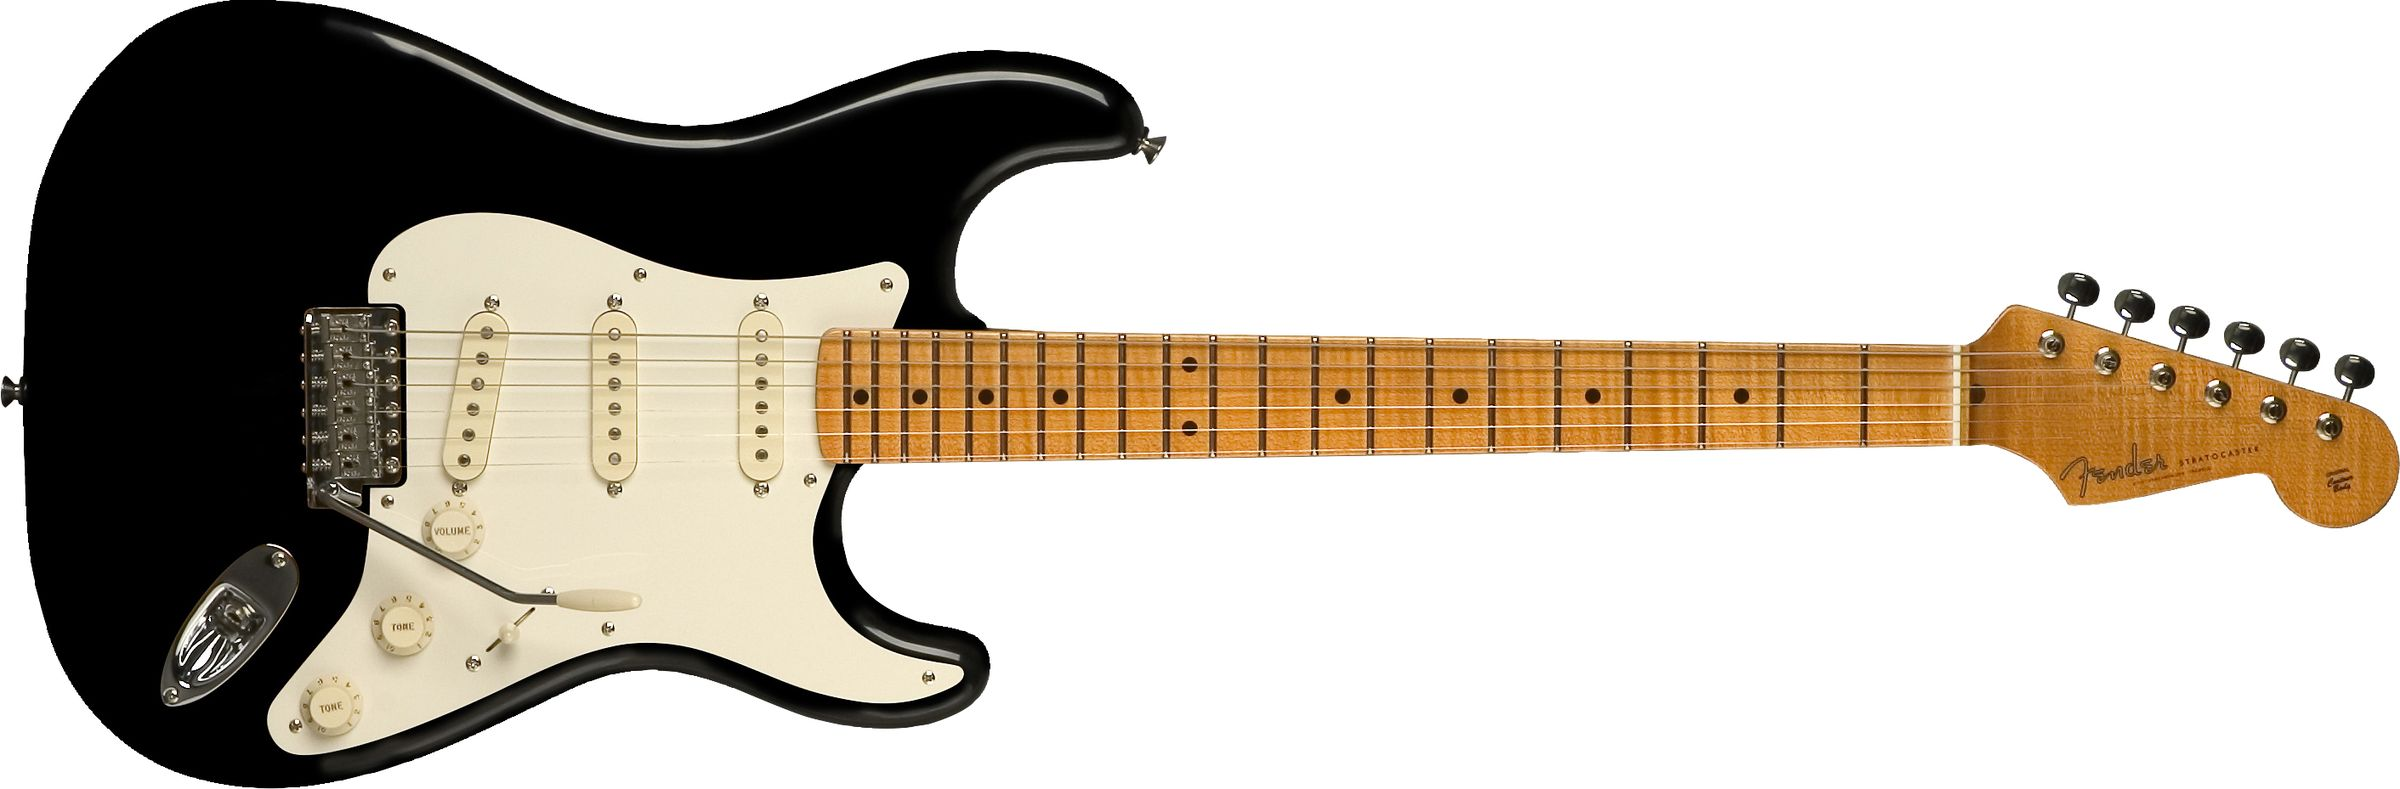 GUITARRA FENDER SIG SERIES ERIC JOHNSON STRATOCASTER 011-7702-806 BLACK